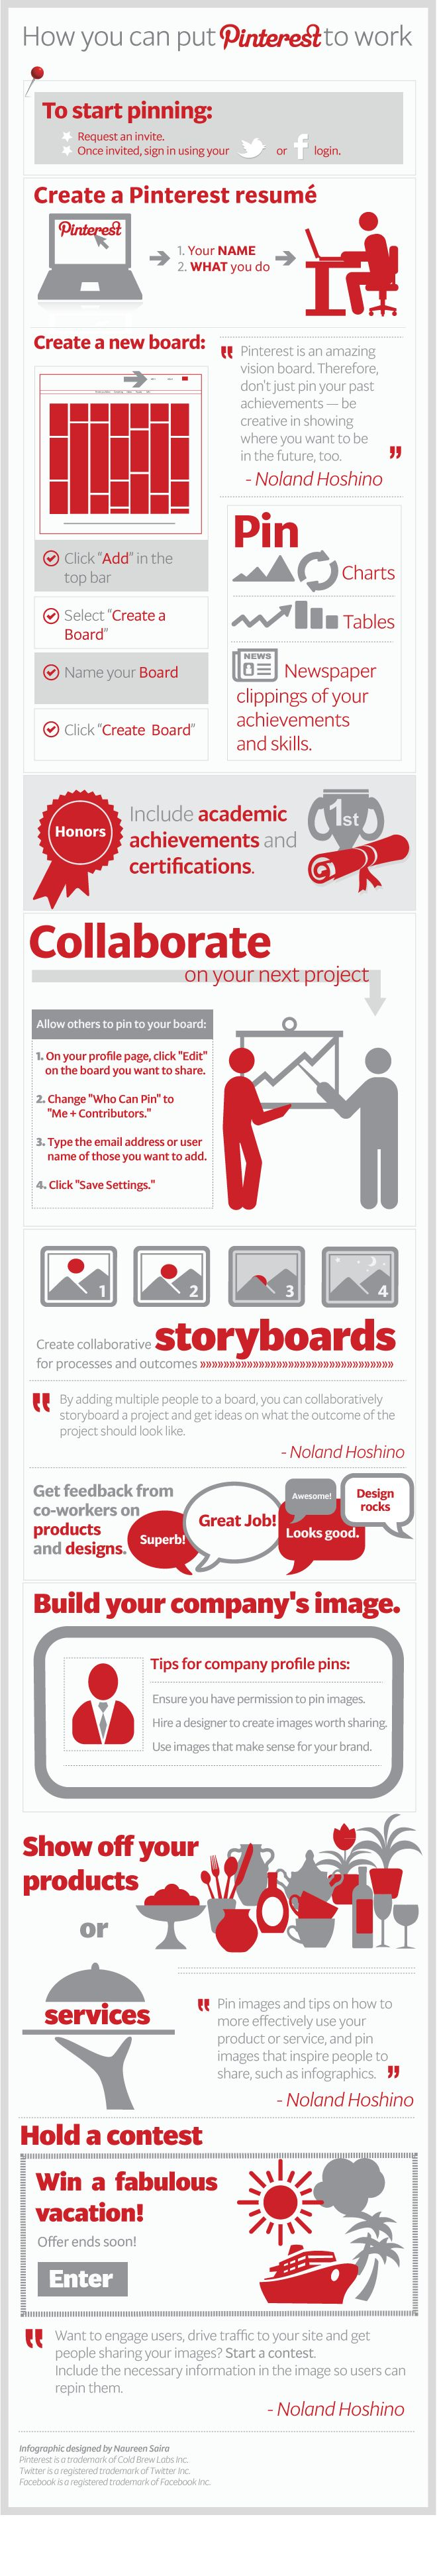 INFOGRAPHIC: How you can put Pinterest to work